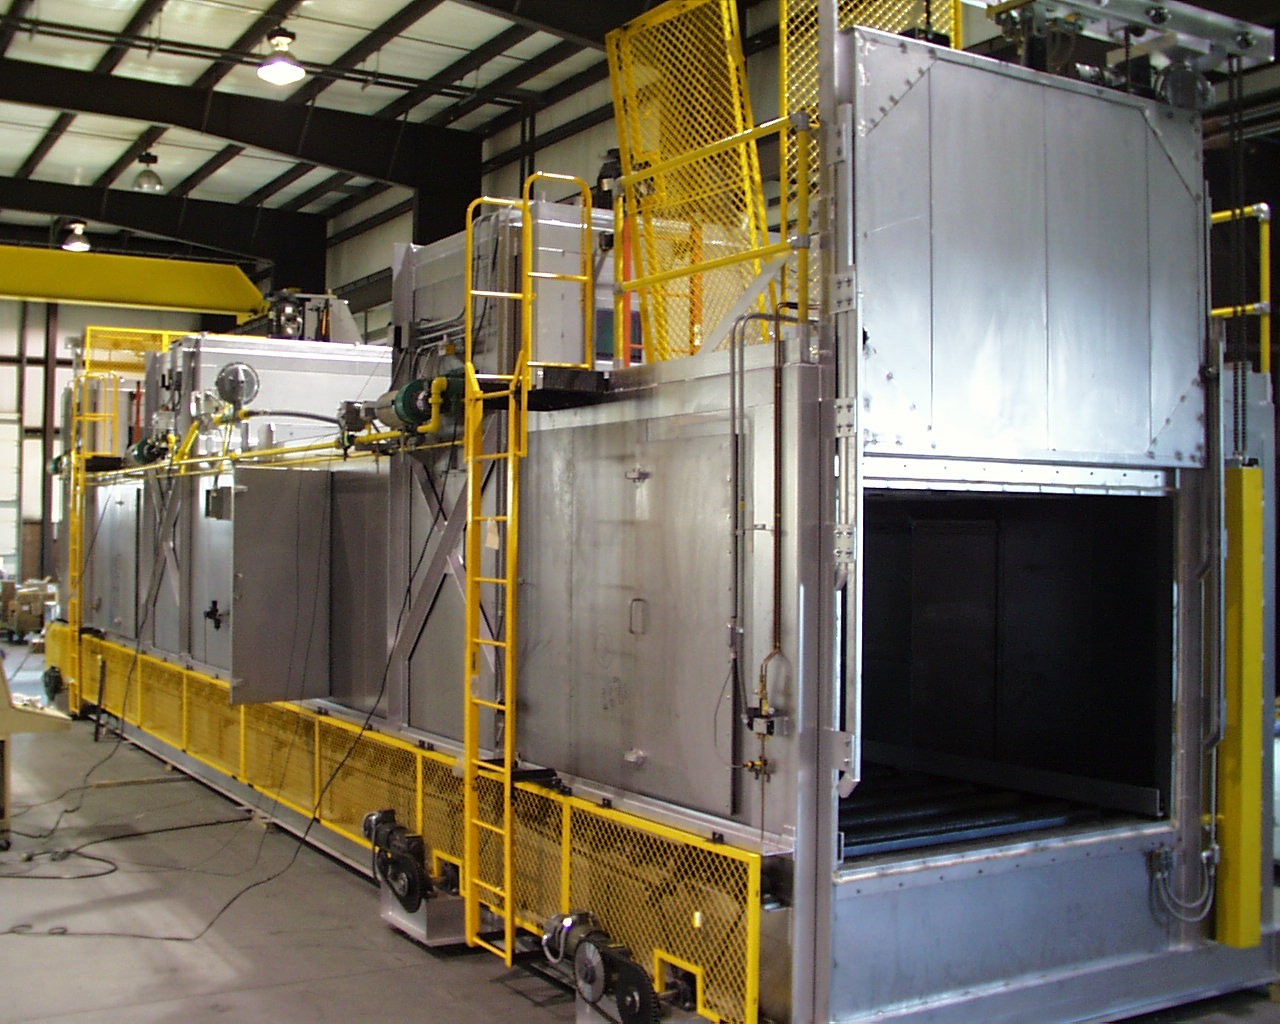 The Lanly Company - Photo Gallery - Industrial Ovens. Dryers. Heat Treating